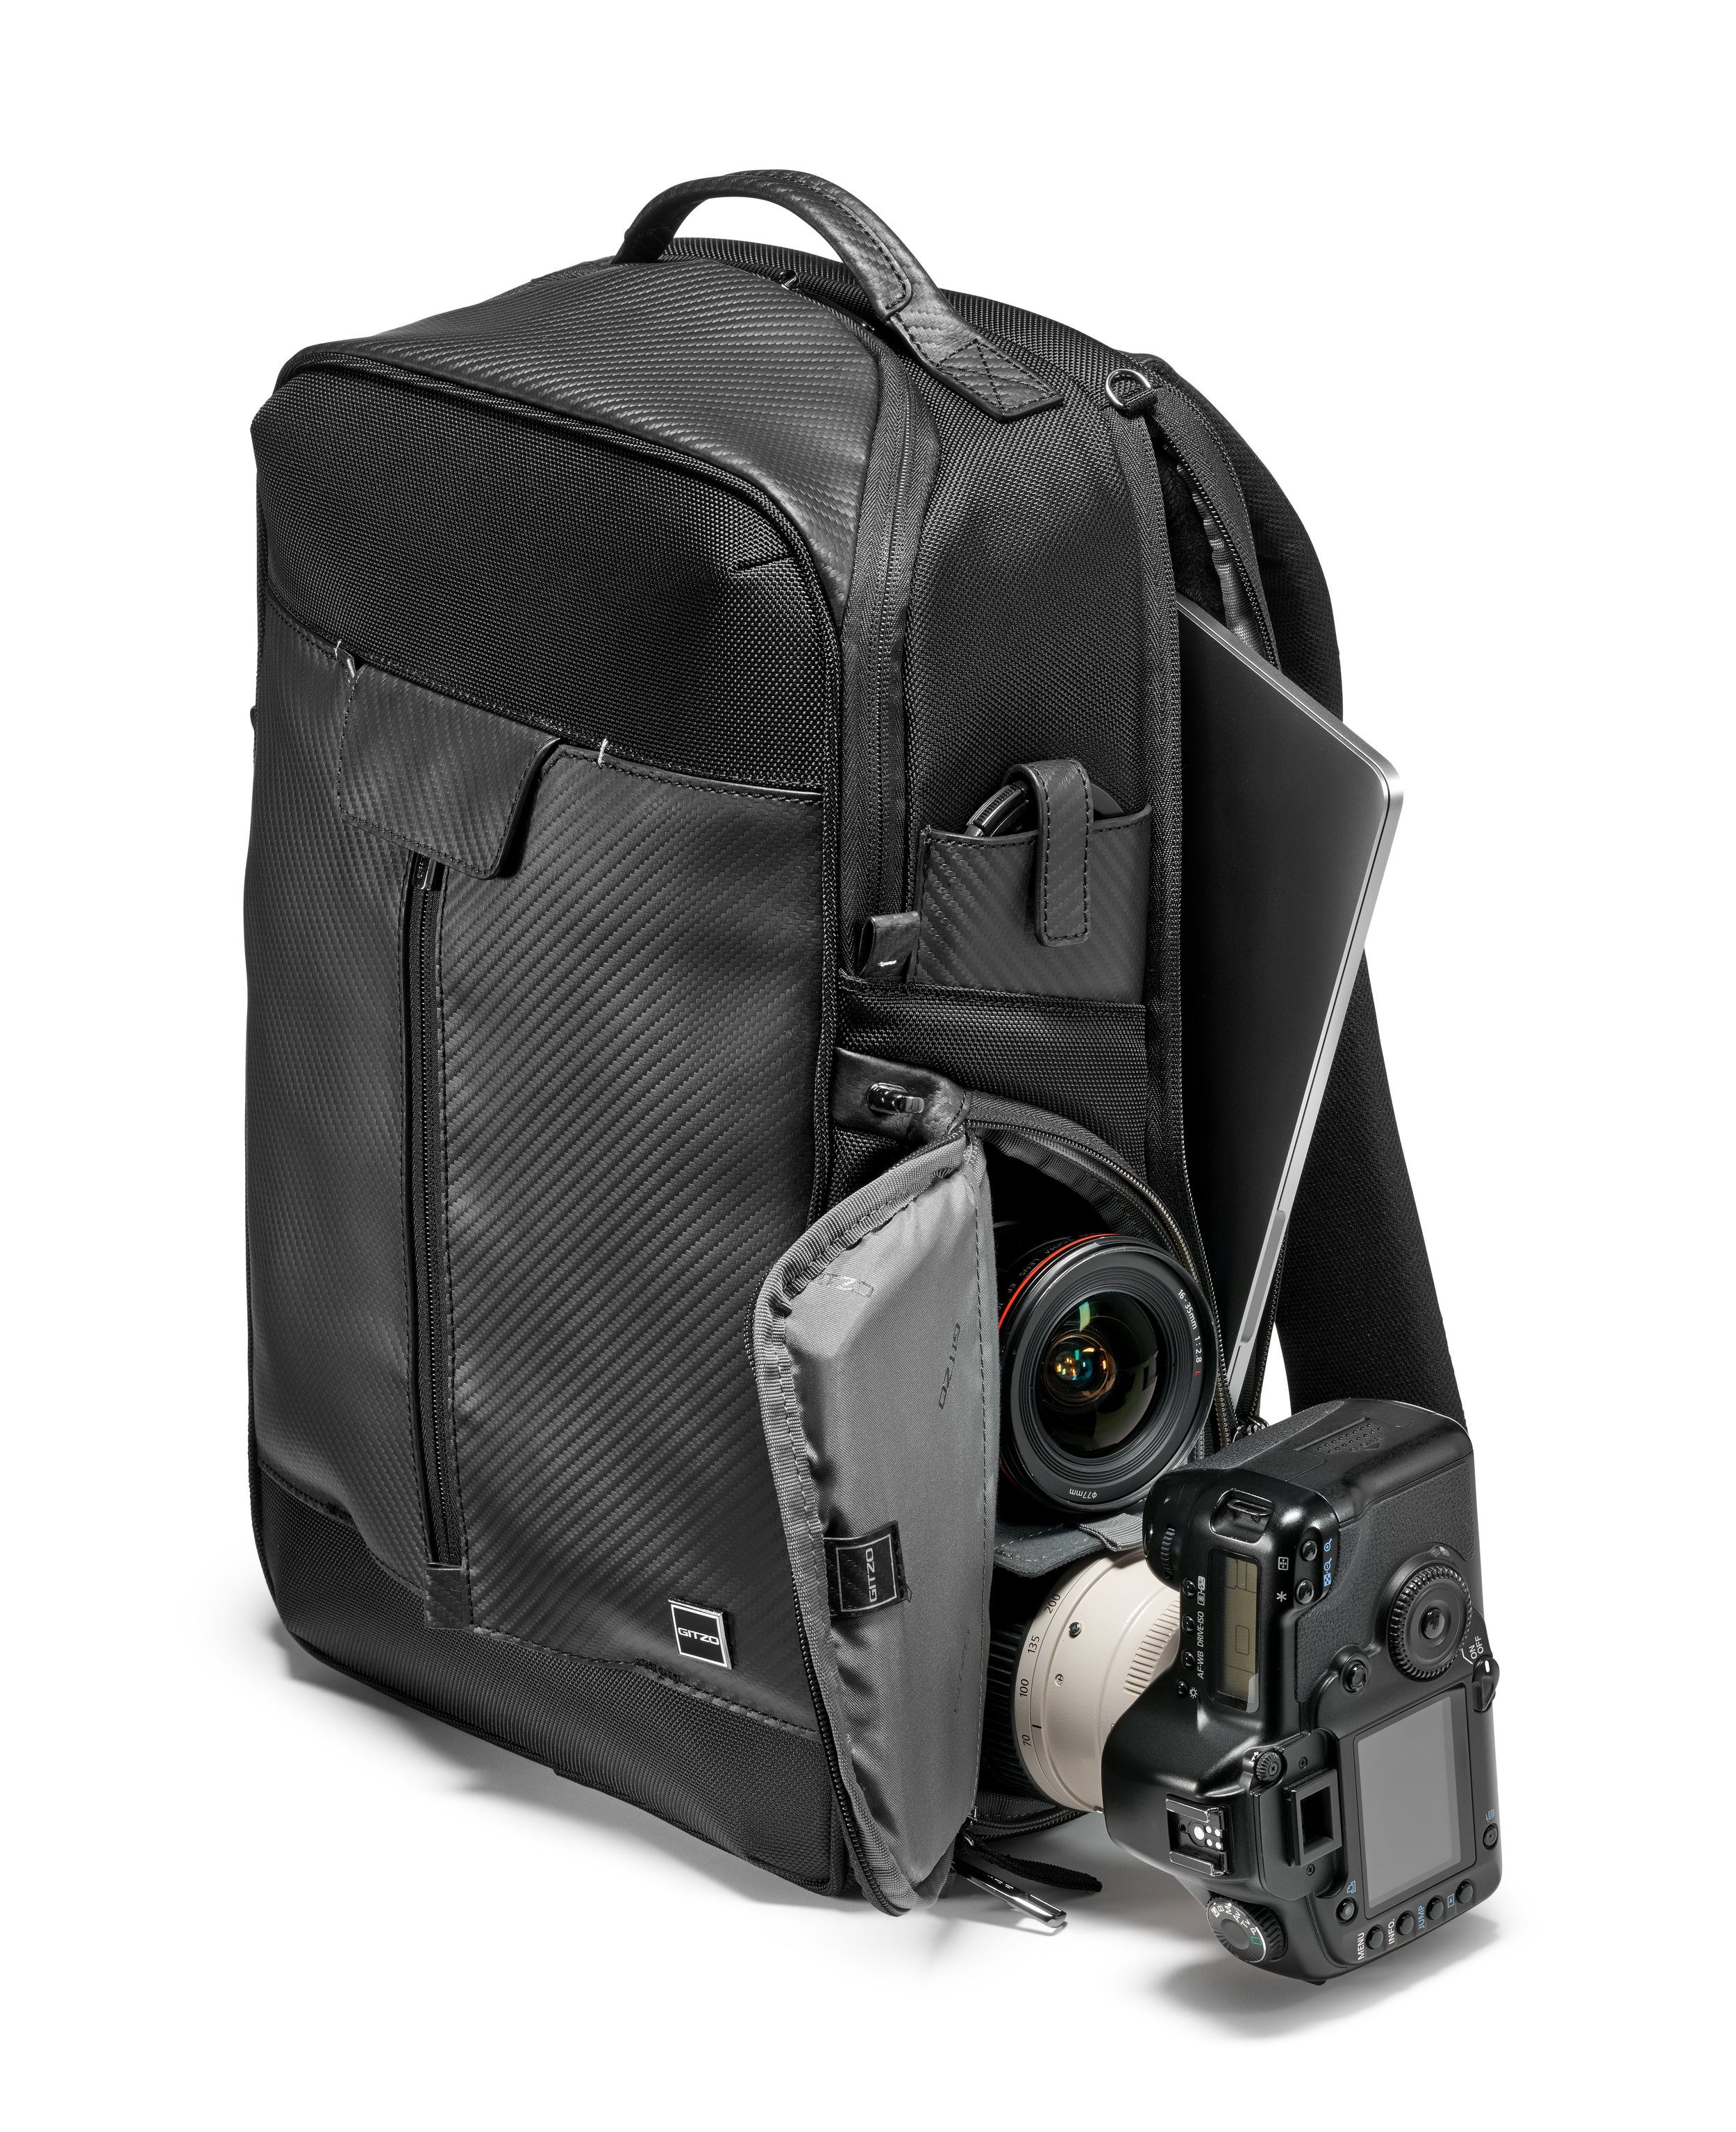 HR-GITZO_camera_bag_GCB100BP_internal photo.jpg